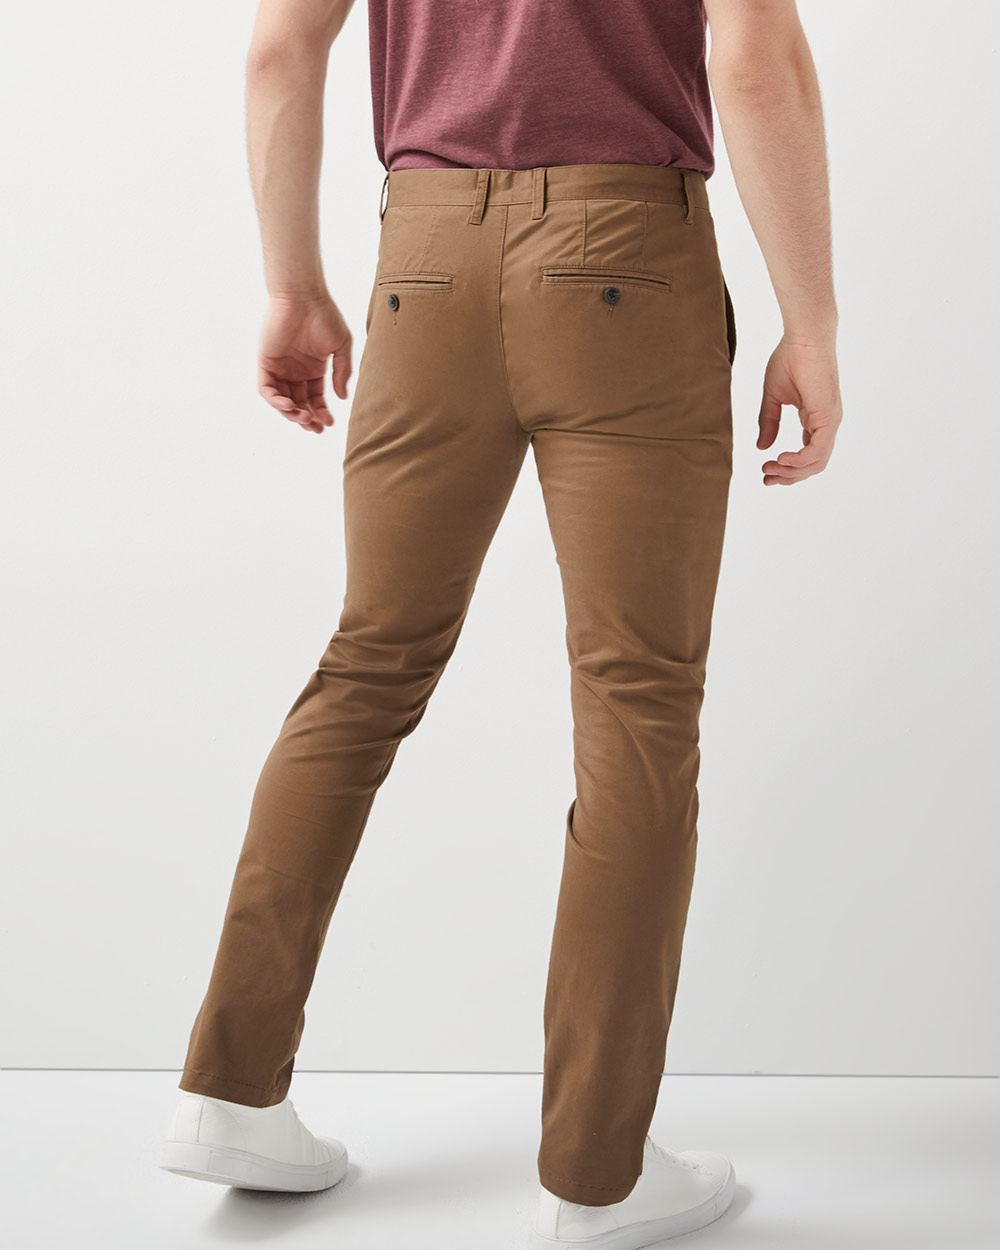 Slim Fit Chino Pant 30 Rwco Tendencies Navy Chinos Short 32